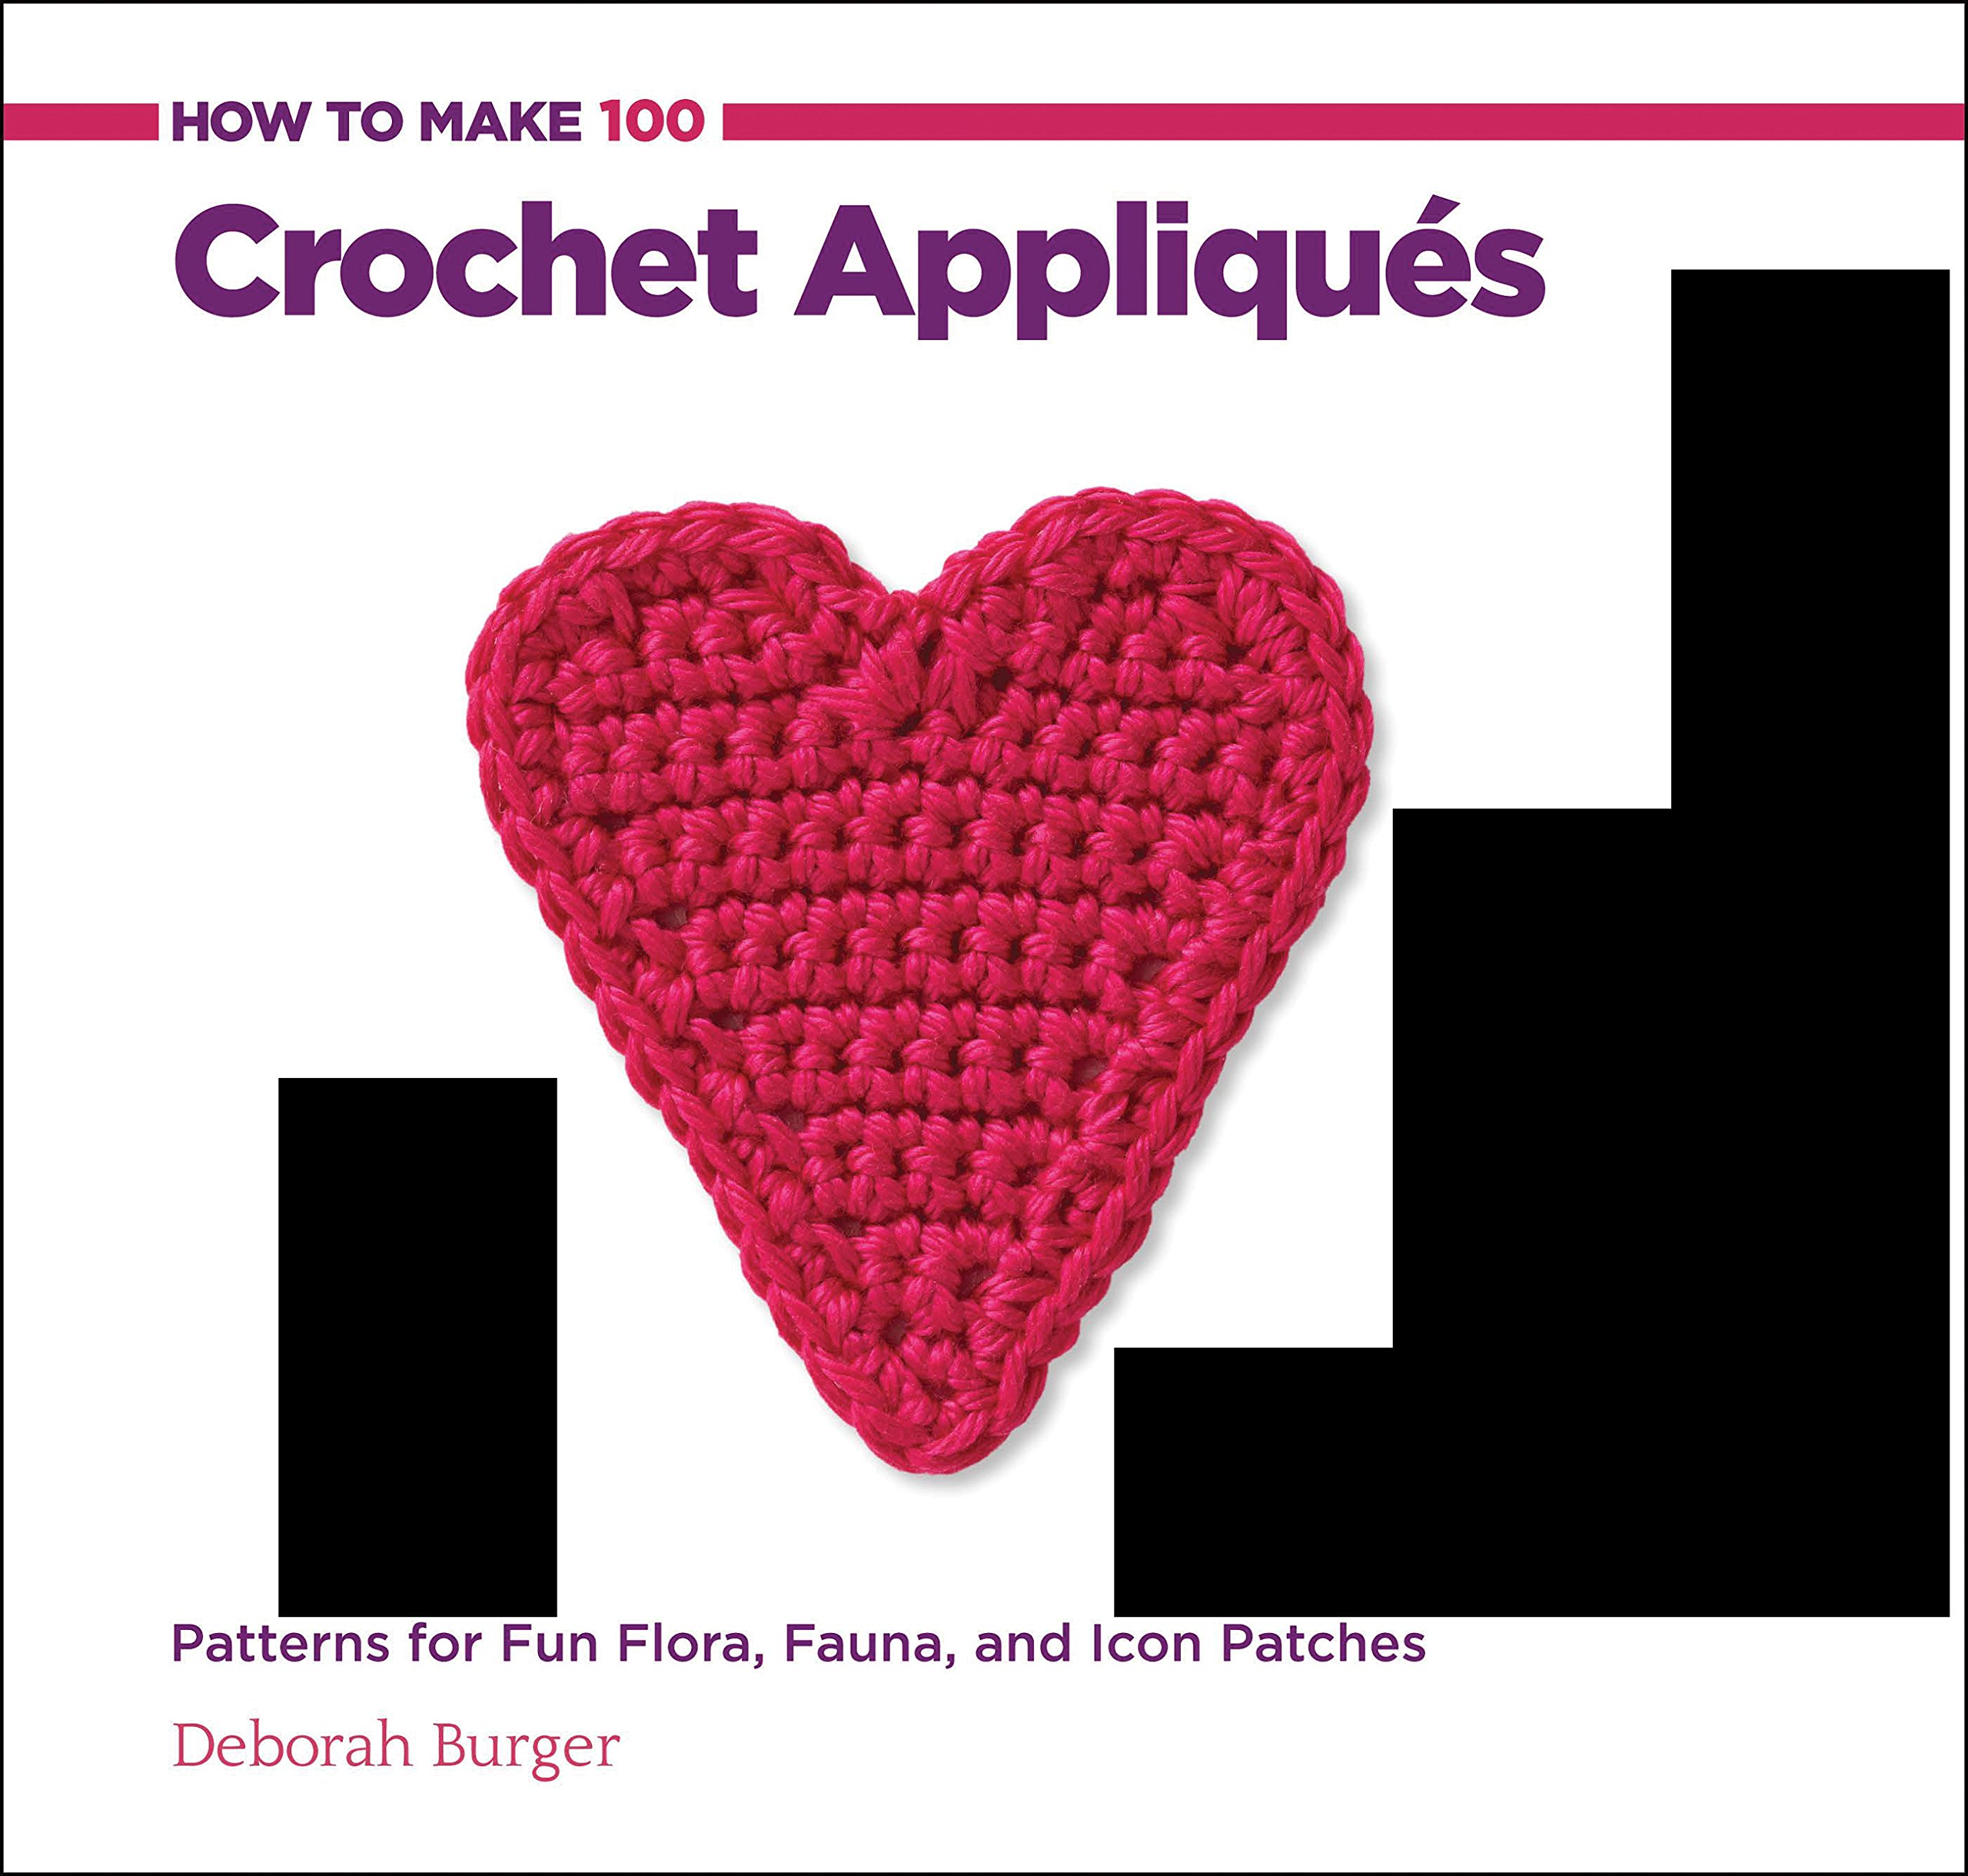 How to Make 100 Crochet Appliques: Patterns for Fun Flora, Fauna ...